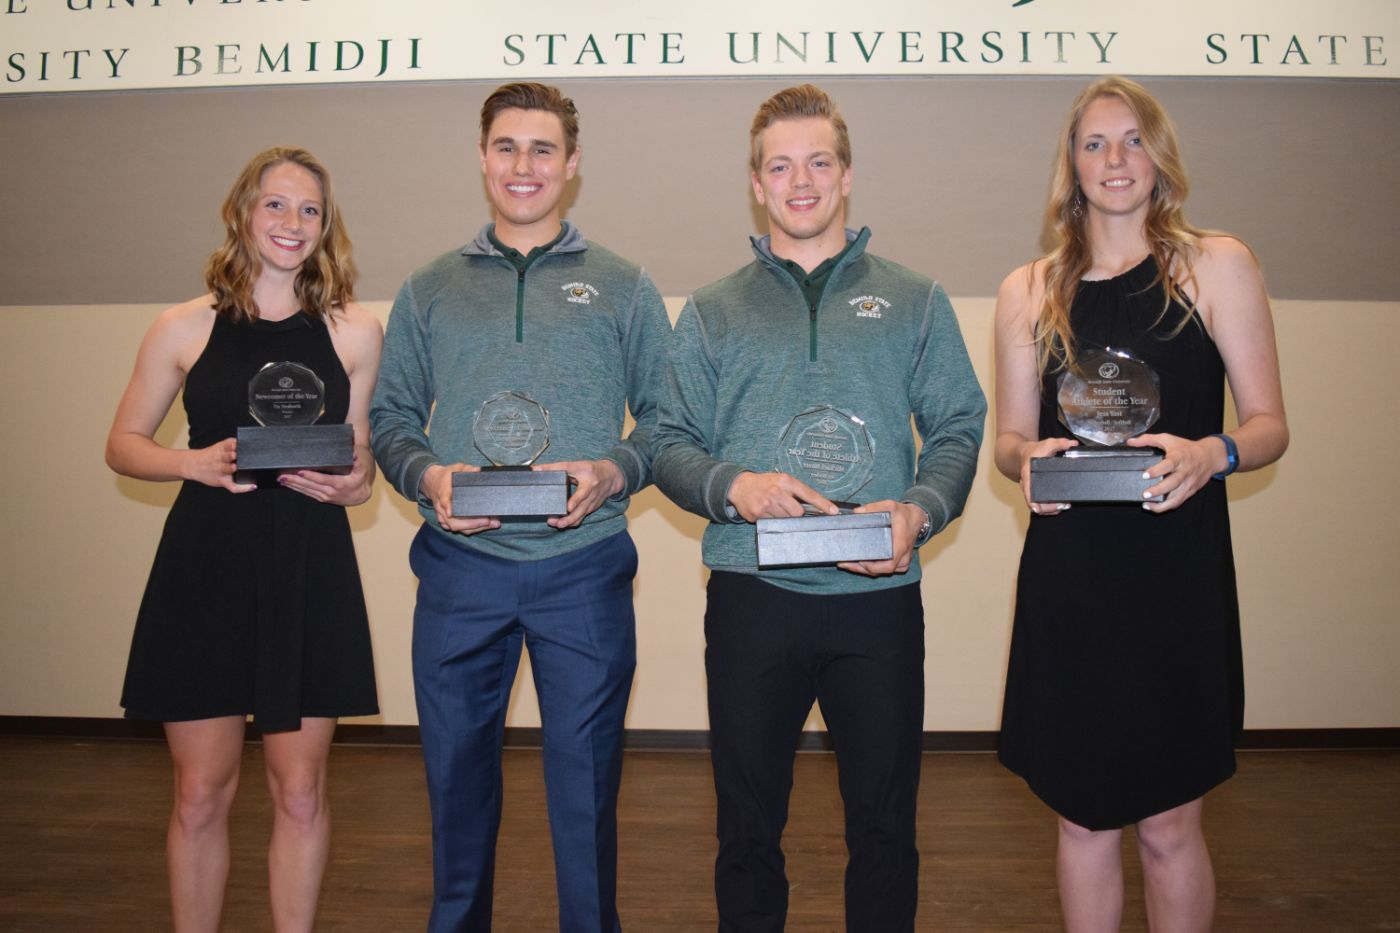 Yost and Bitzer named Bemidji State's Student-Athletes of the Year